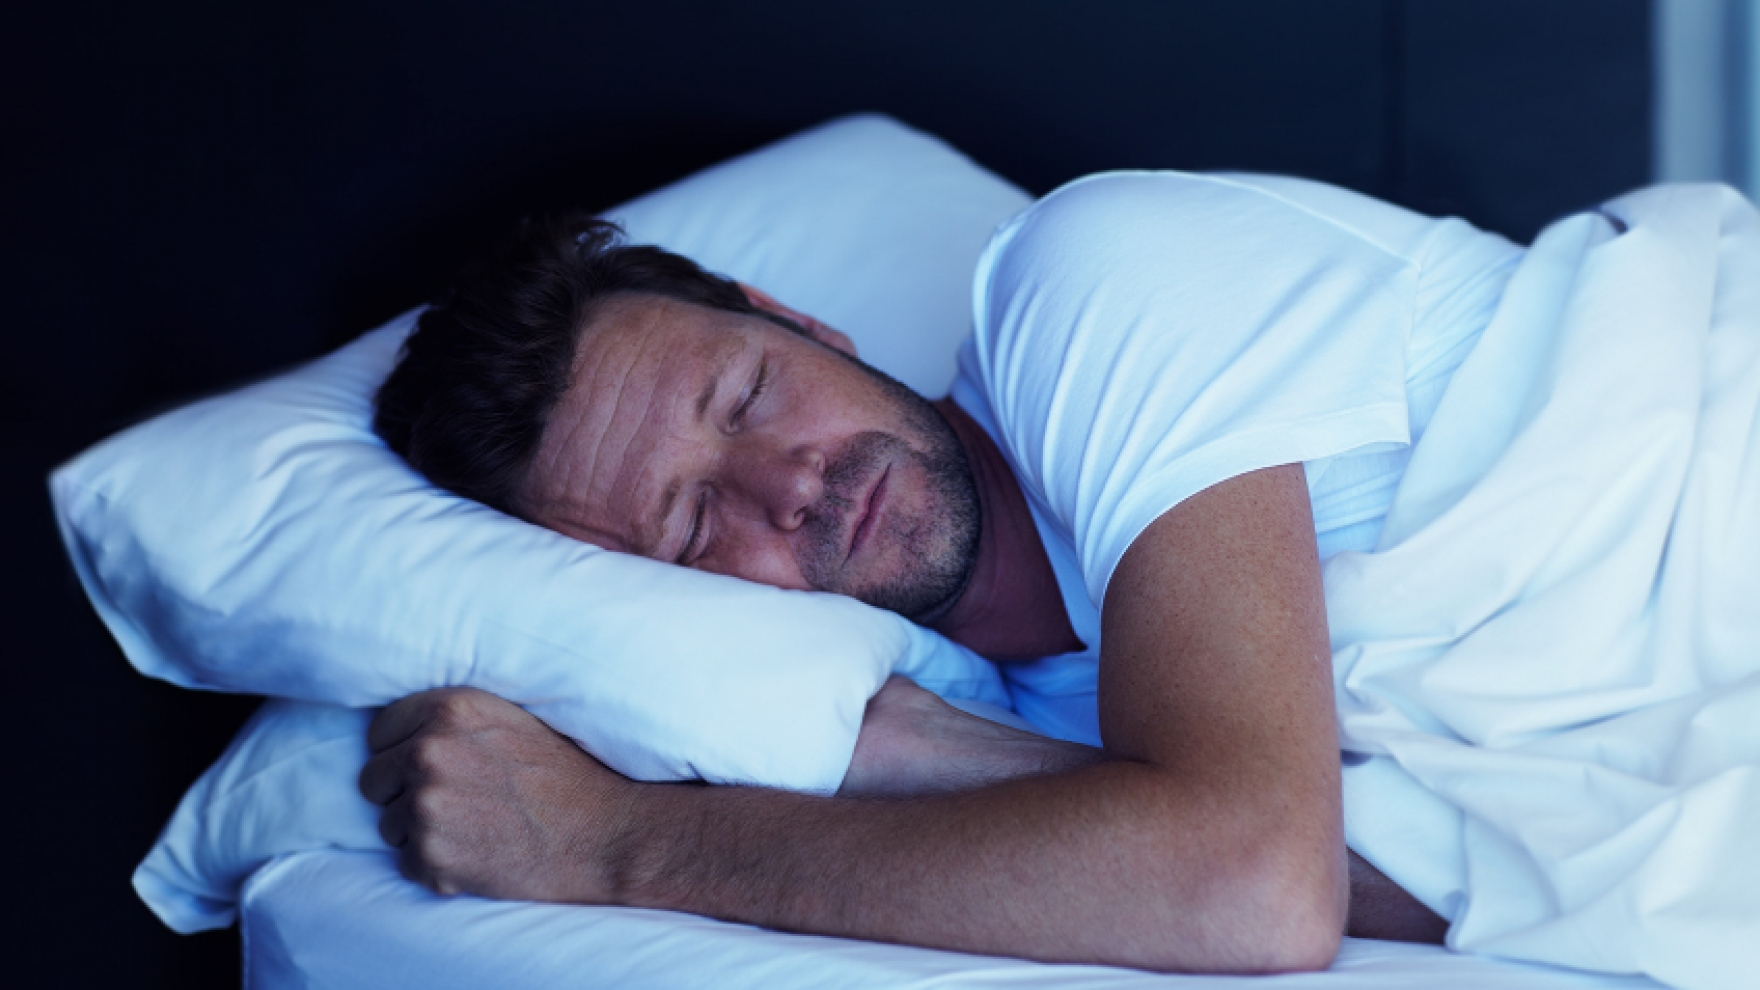 stock image of man sleeping in a bed